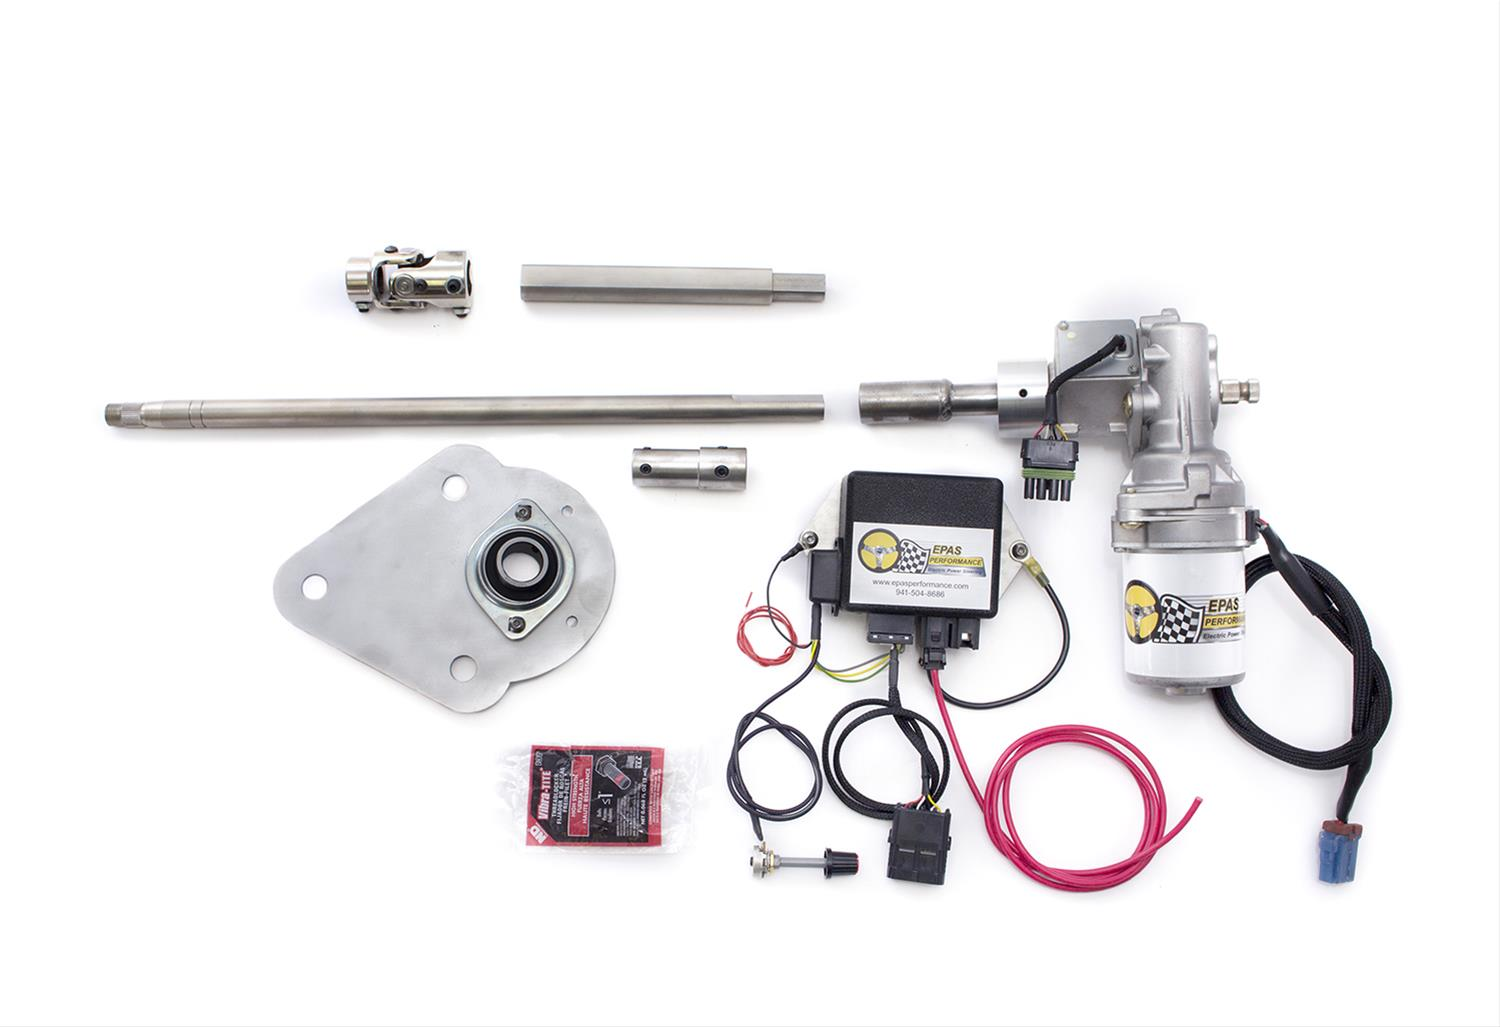 Epas Performance Electric Steering Kits 1006 Free Shipping On Orders Over 99 At Summit Racing